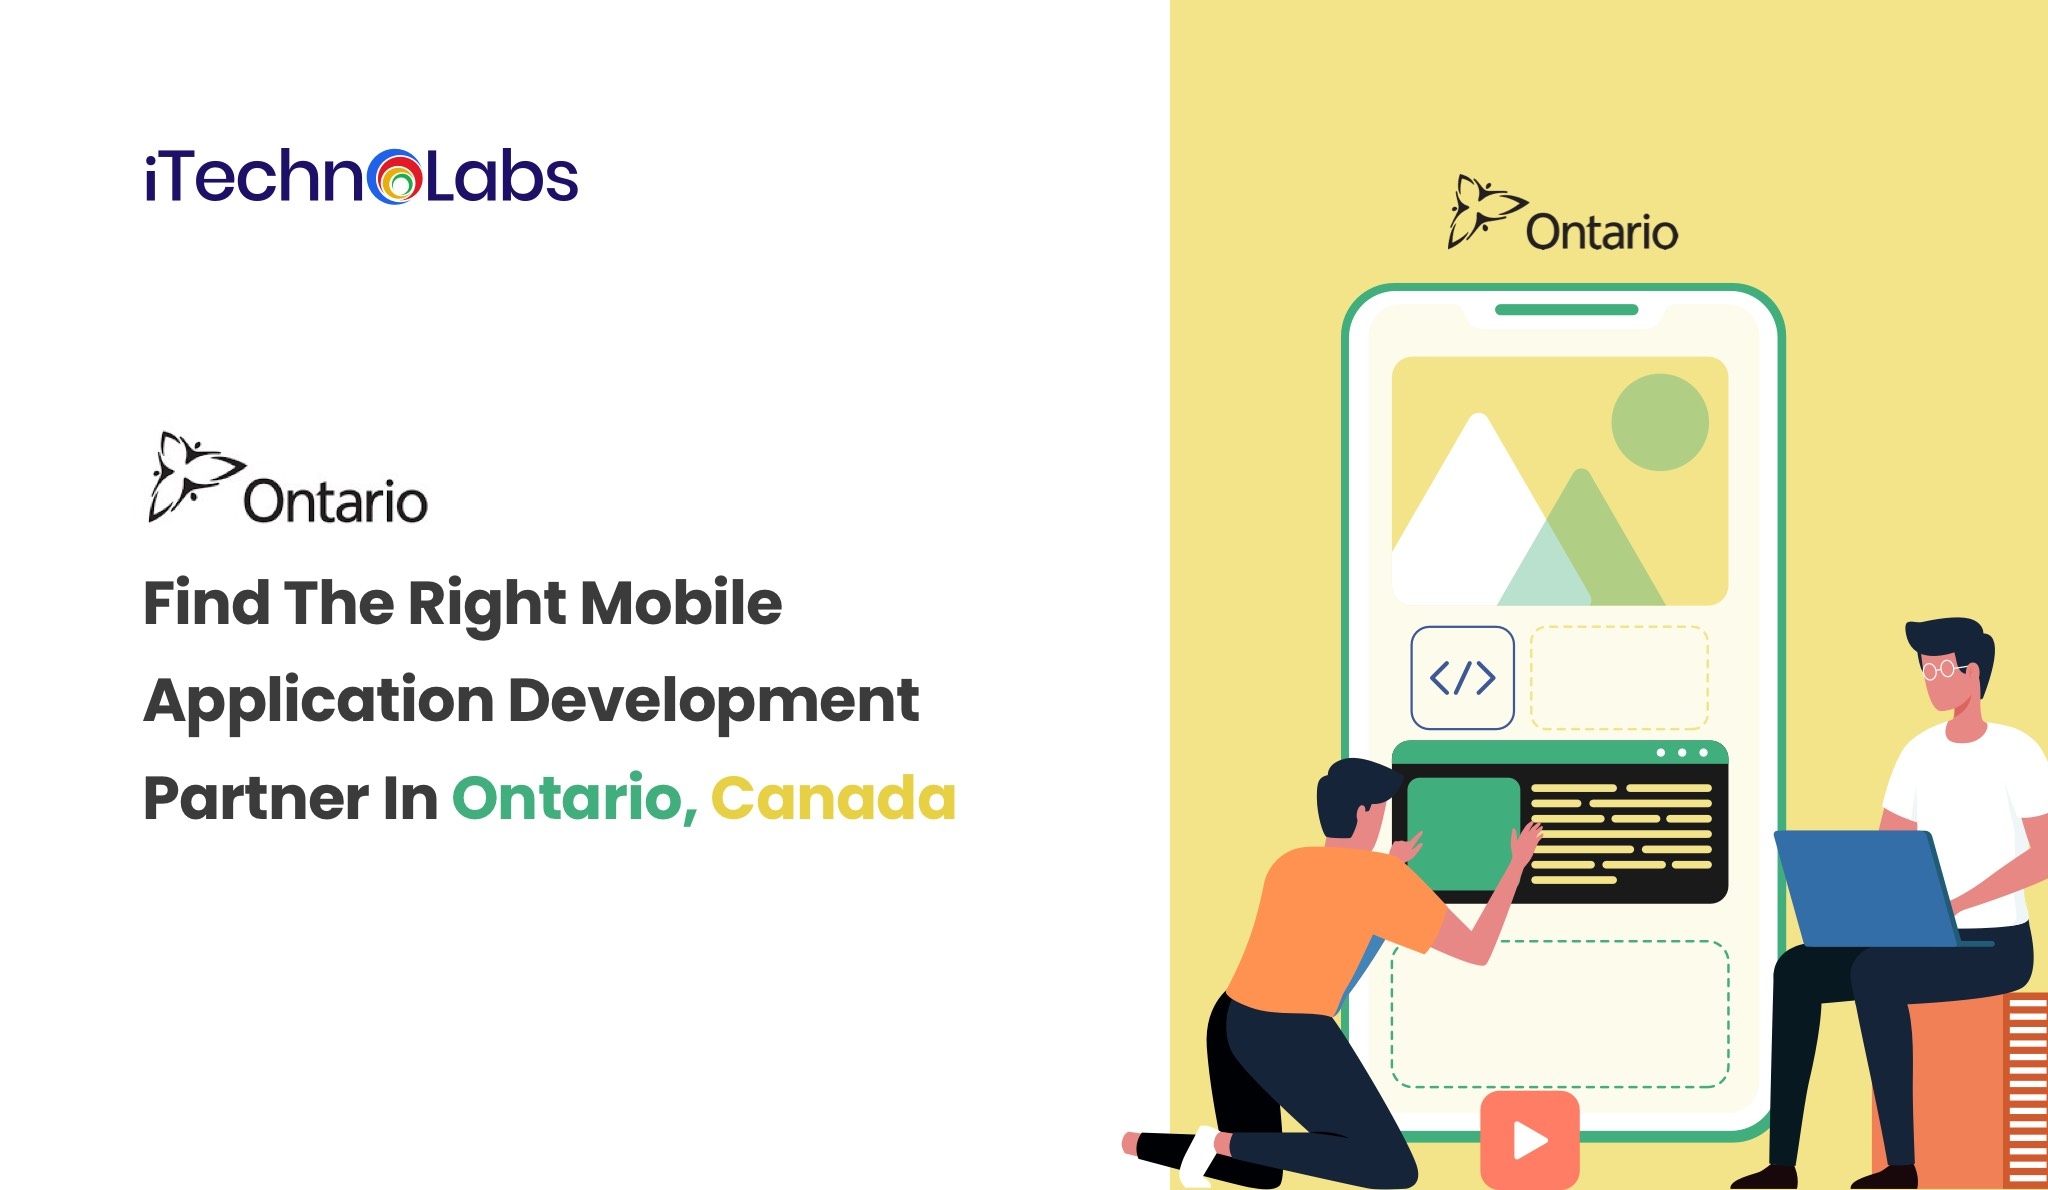 Find the right mobile application development partner in Ontario, Canada